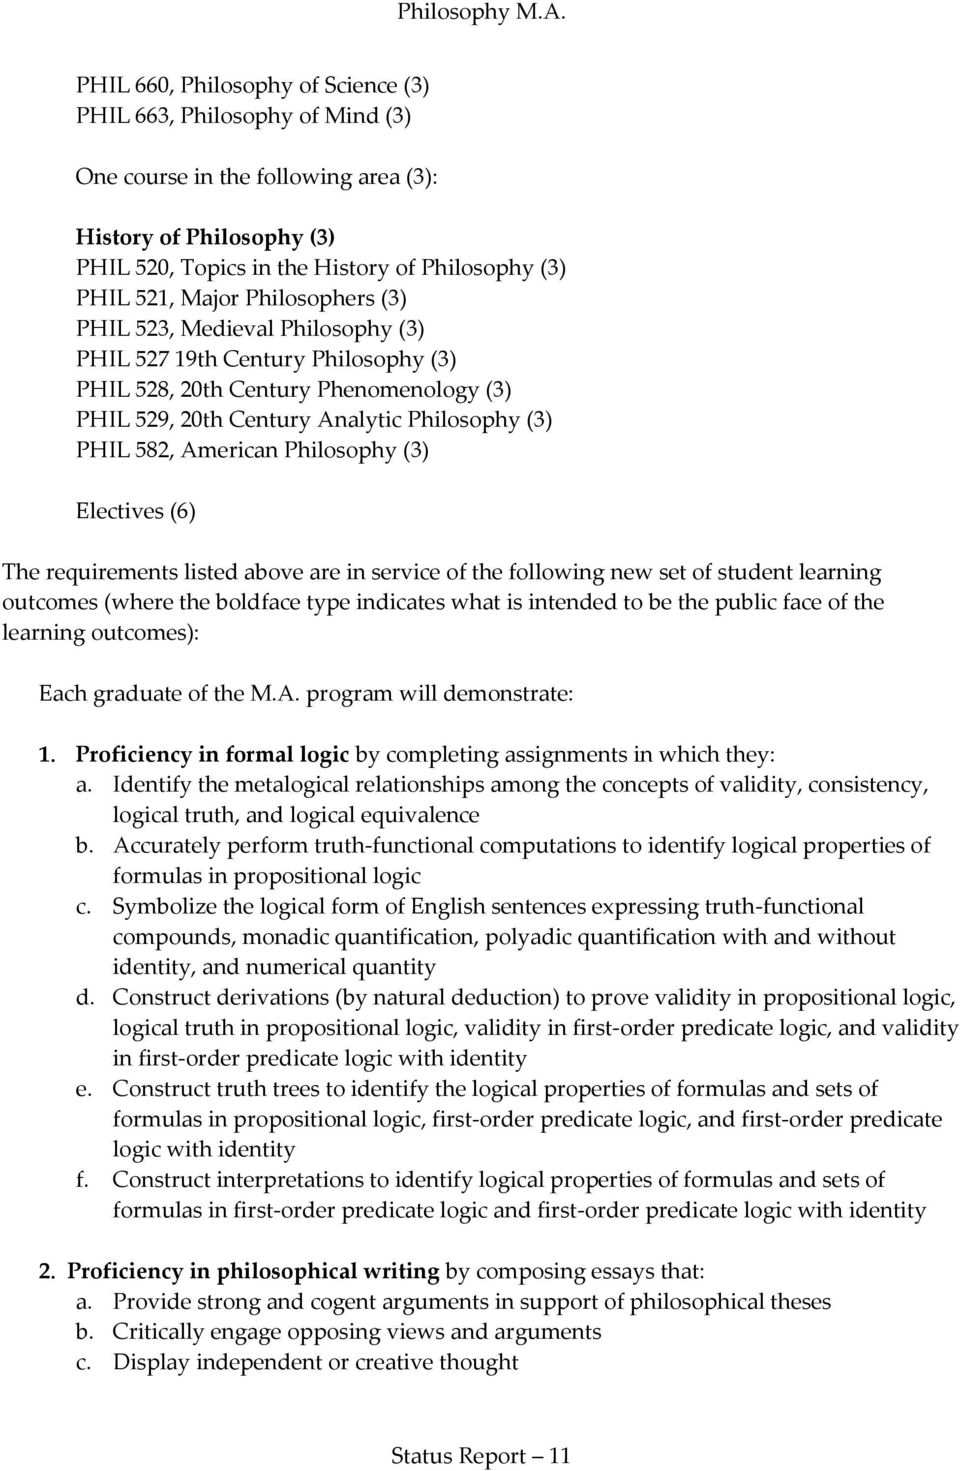 Philosophy (3) Electives (6) The requirements listed above are in service of the following new set of student learning outcomes (where the boldface type indicates what is intended to be the public